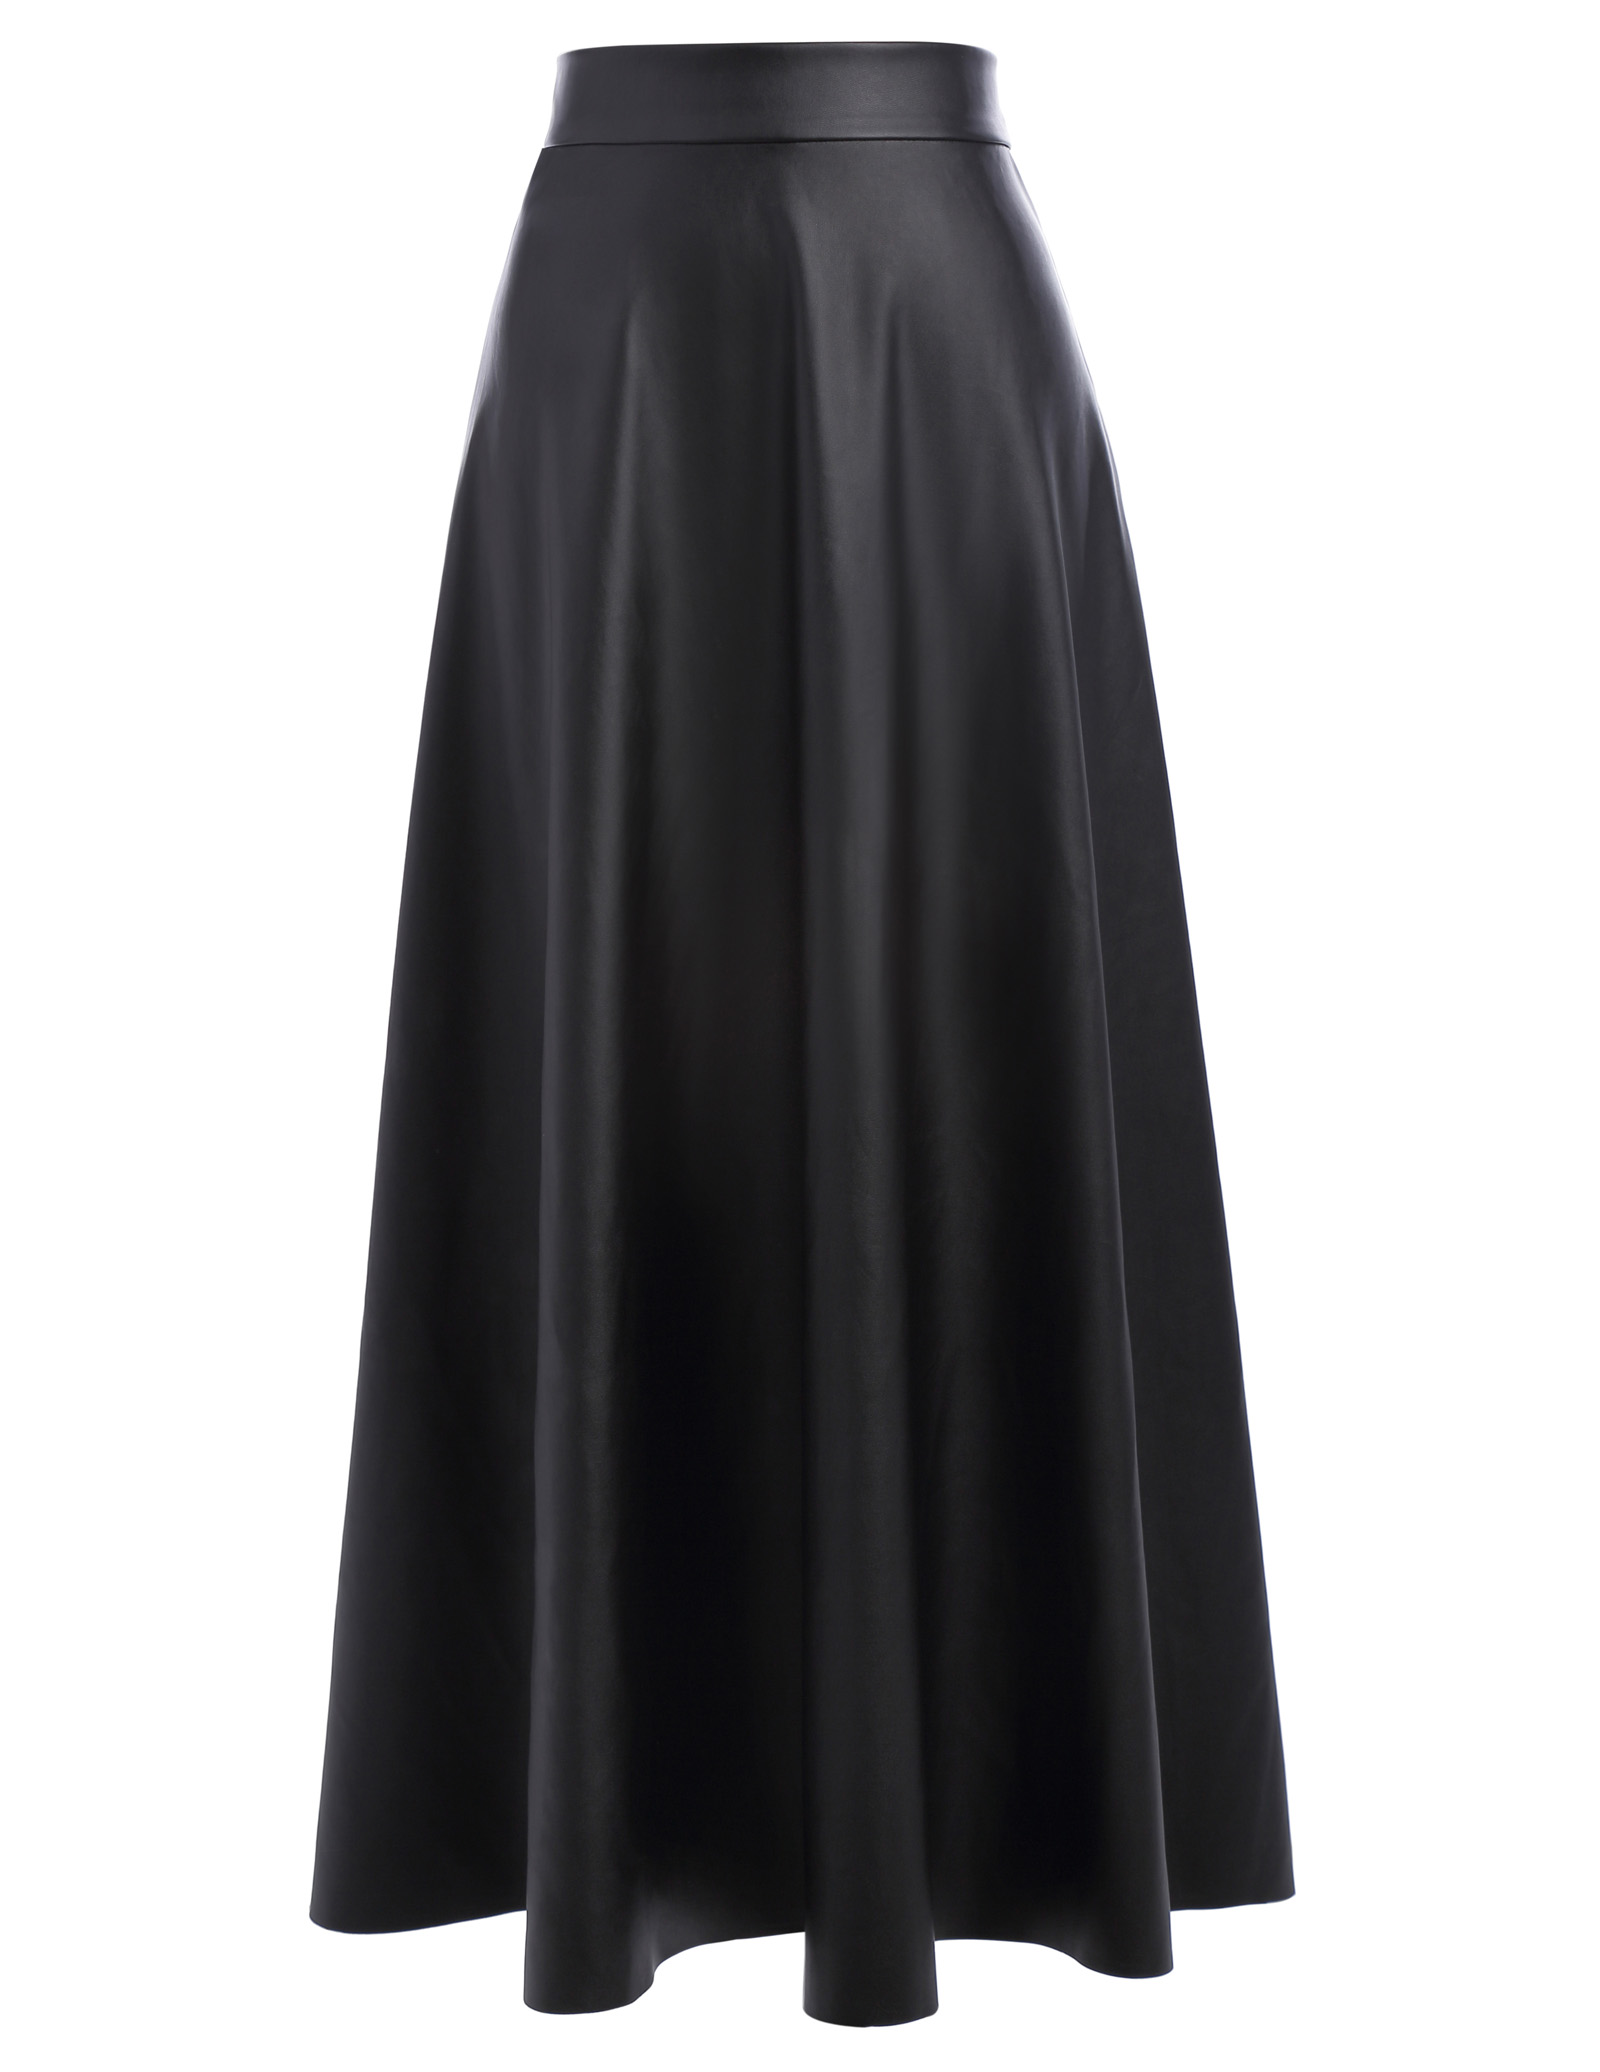 55de1c372d7 streetwear skirts Womens single layer solid color High Waist PU Leather  skirt classic Flared A-Line long maxi Skirt falda mujer